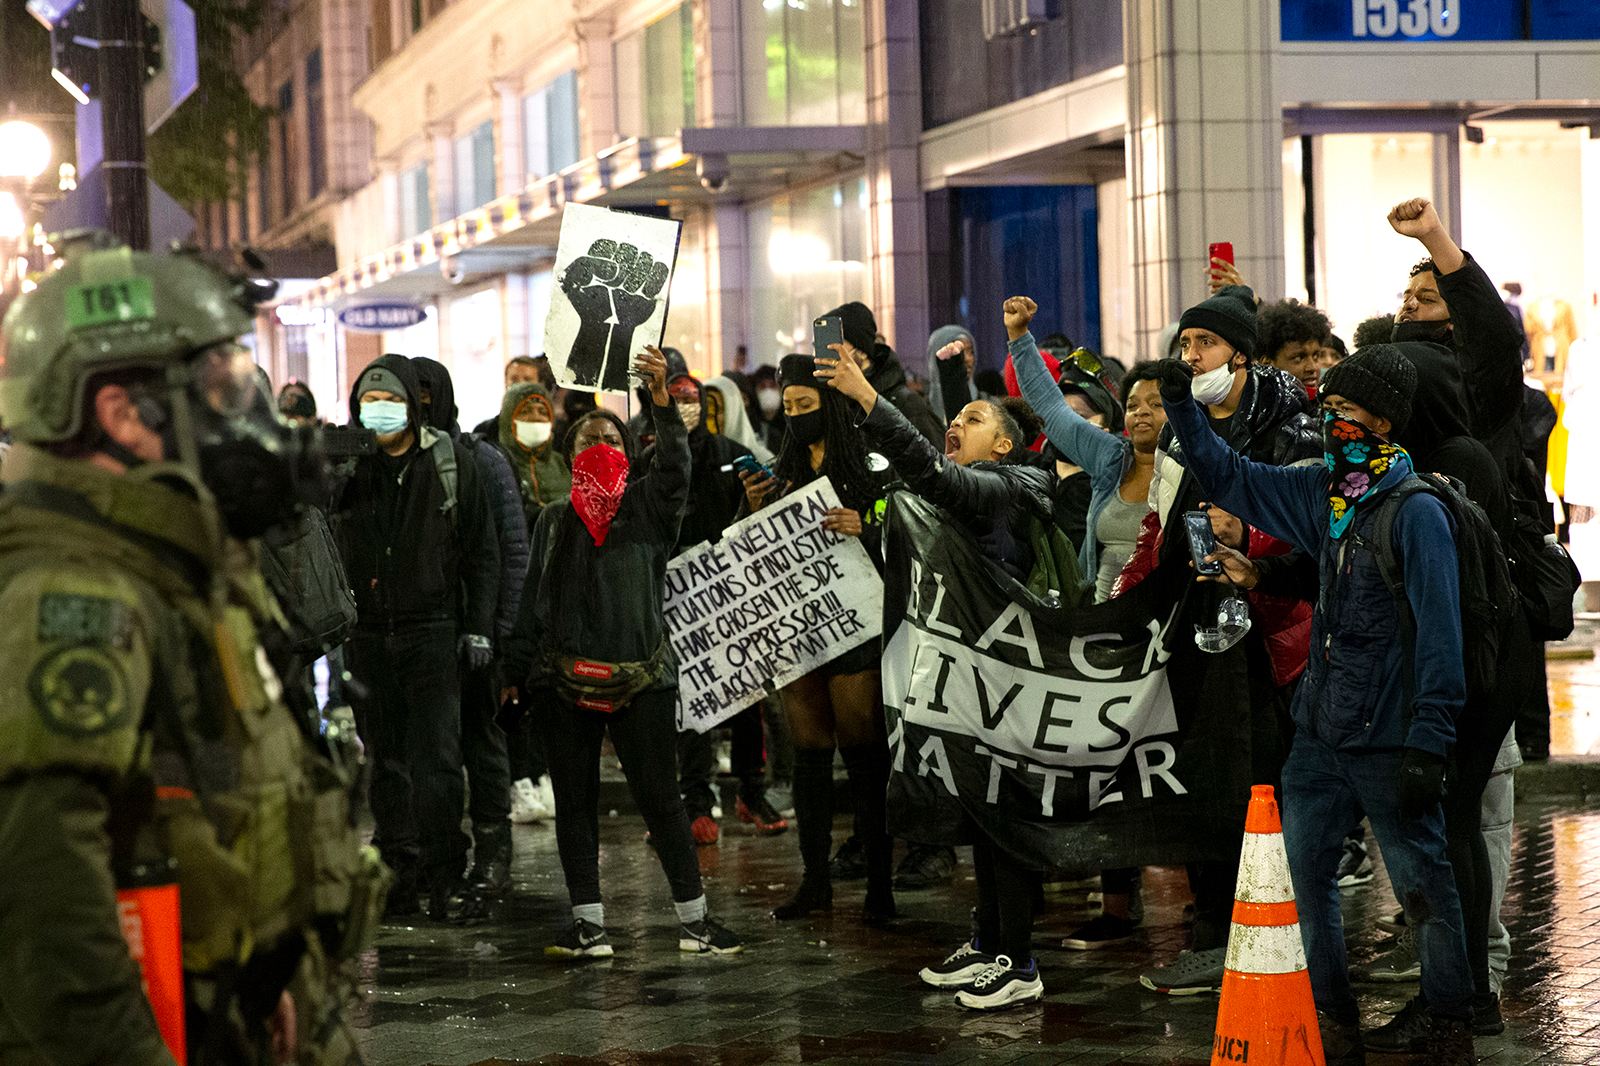 Protesters holding a Black Lives Matter banner shout at law enforcement officers on May 30, in Seattle, Washington.